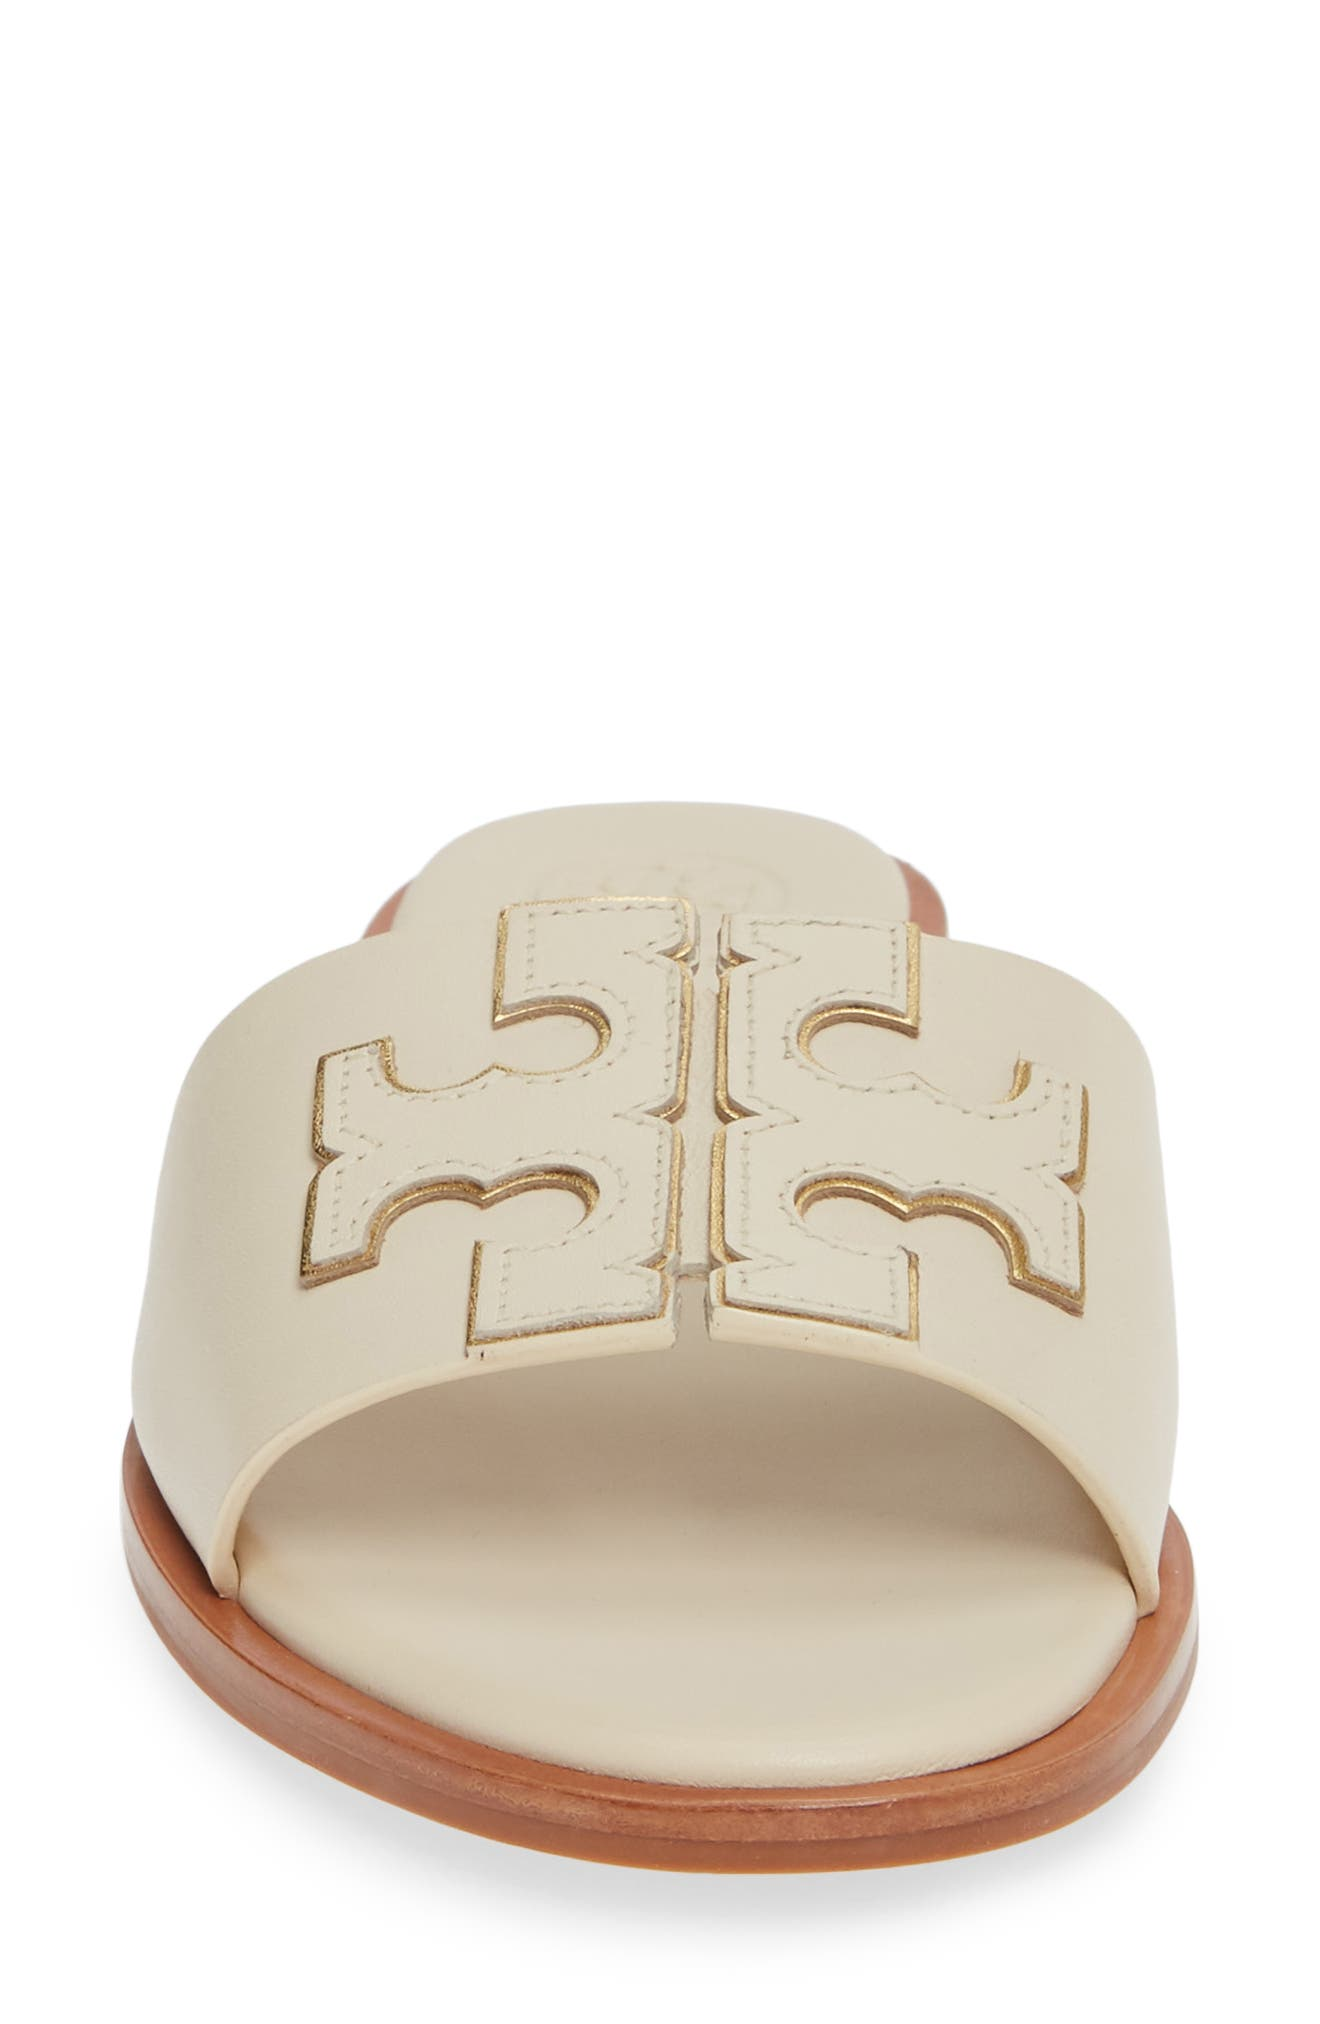 TORY BURCH, Ines Slide Sandal, Alternate thumbnail 4, color, NEW CREAM/ GOLD